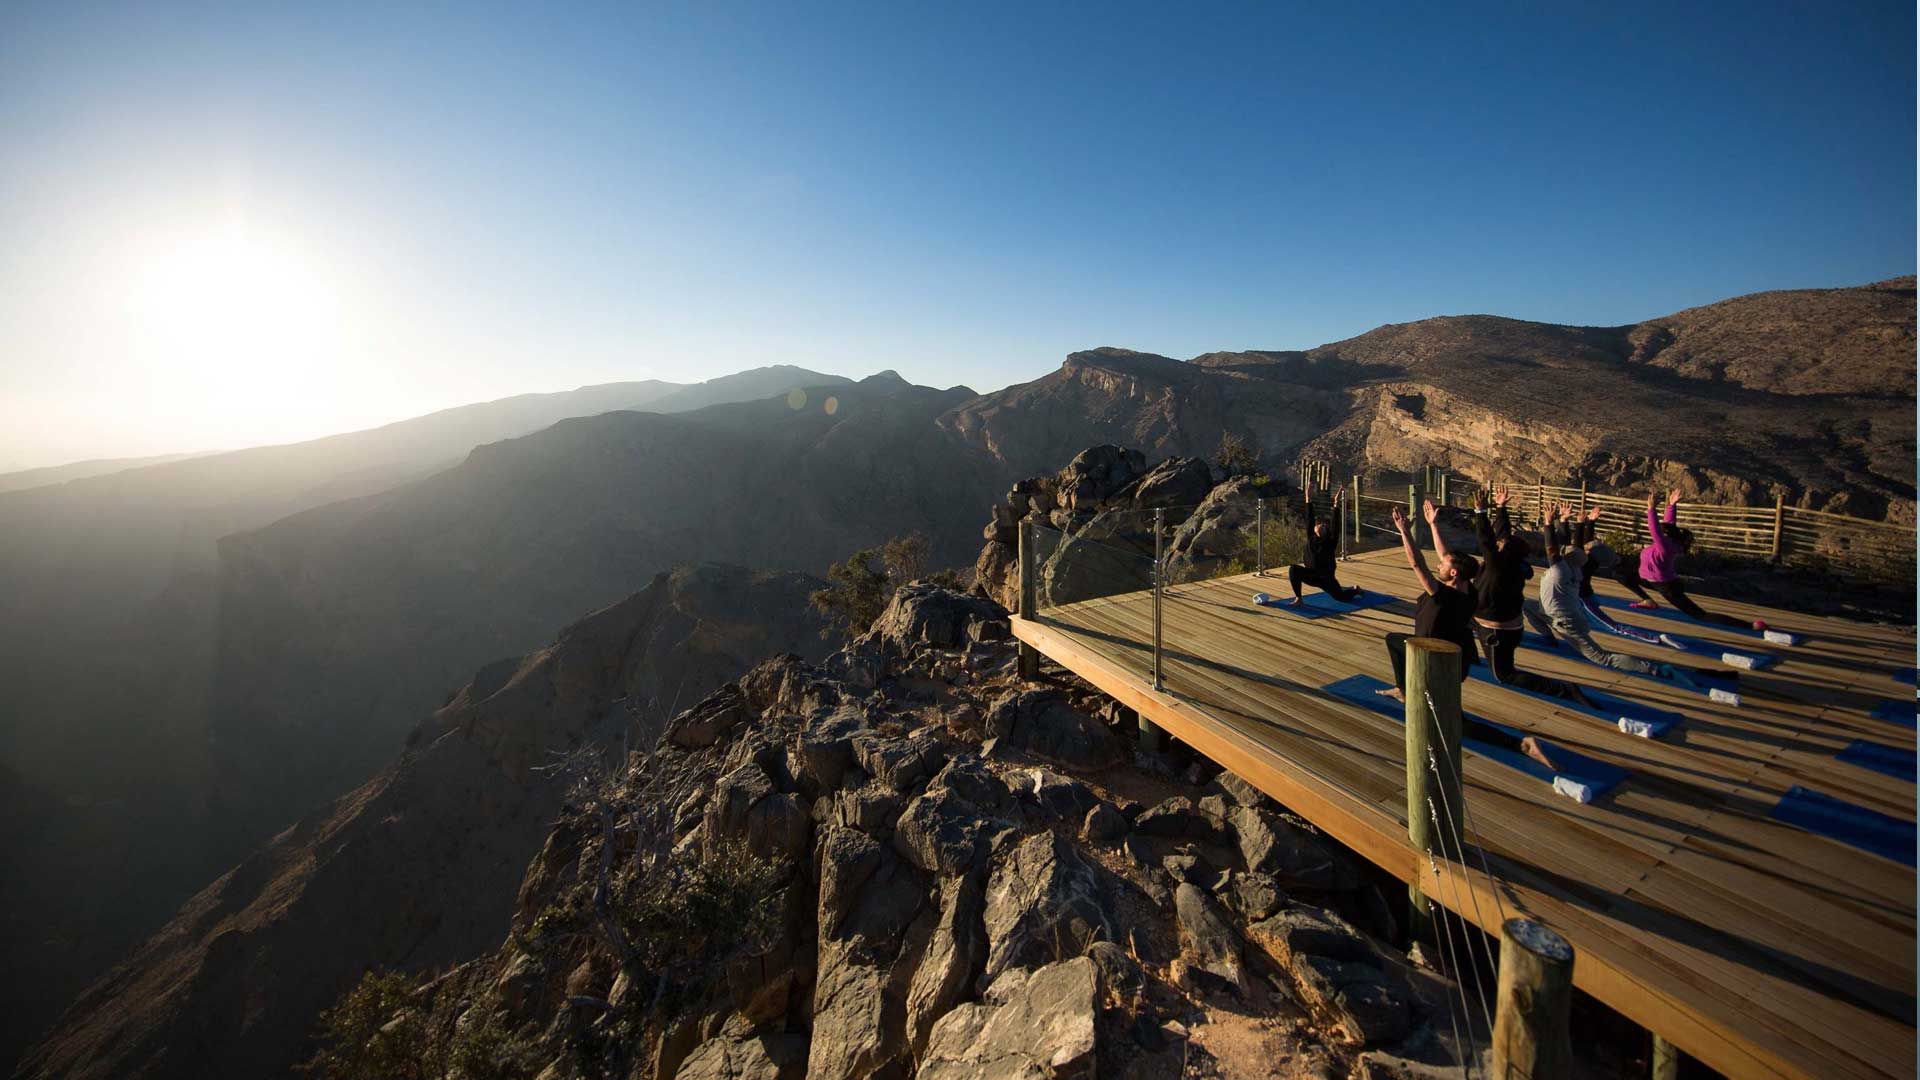 Alila Jabal Akhdar Yoga Deck at the Edge of the Gorge